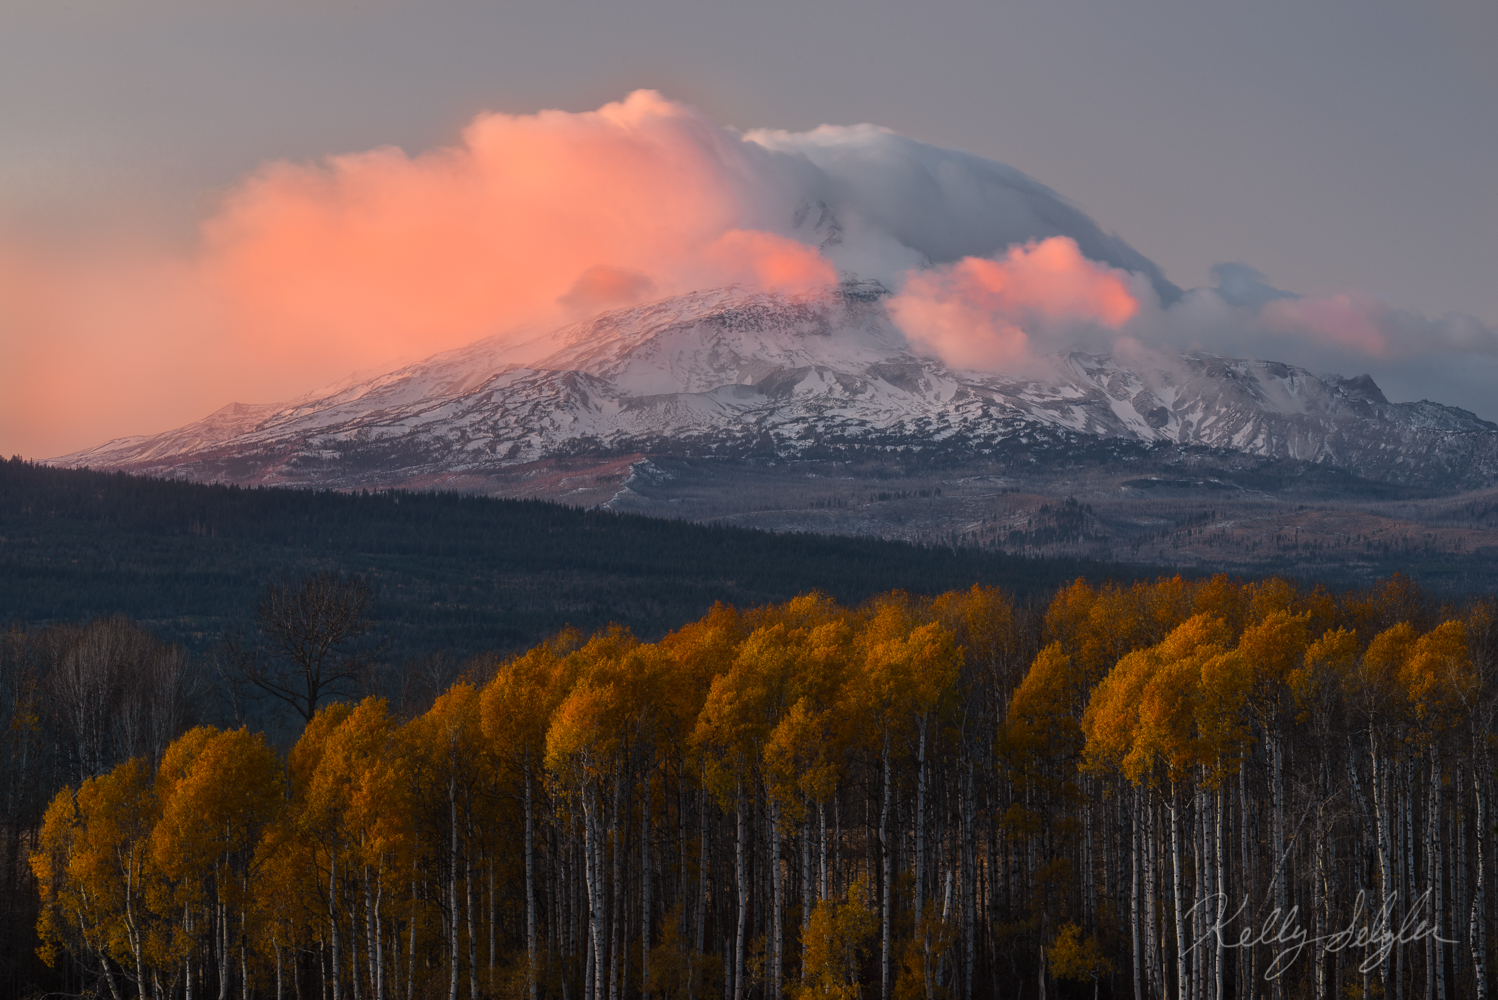 mt adams, sunset, clouds, pink, mountain, aspen trees, magical, photo